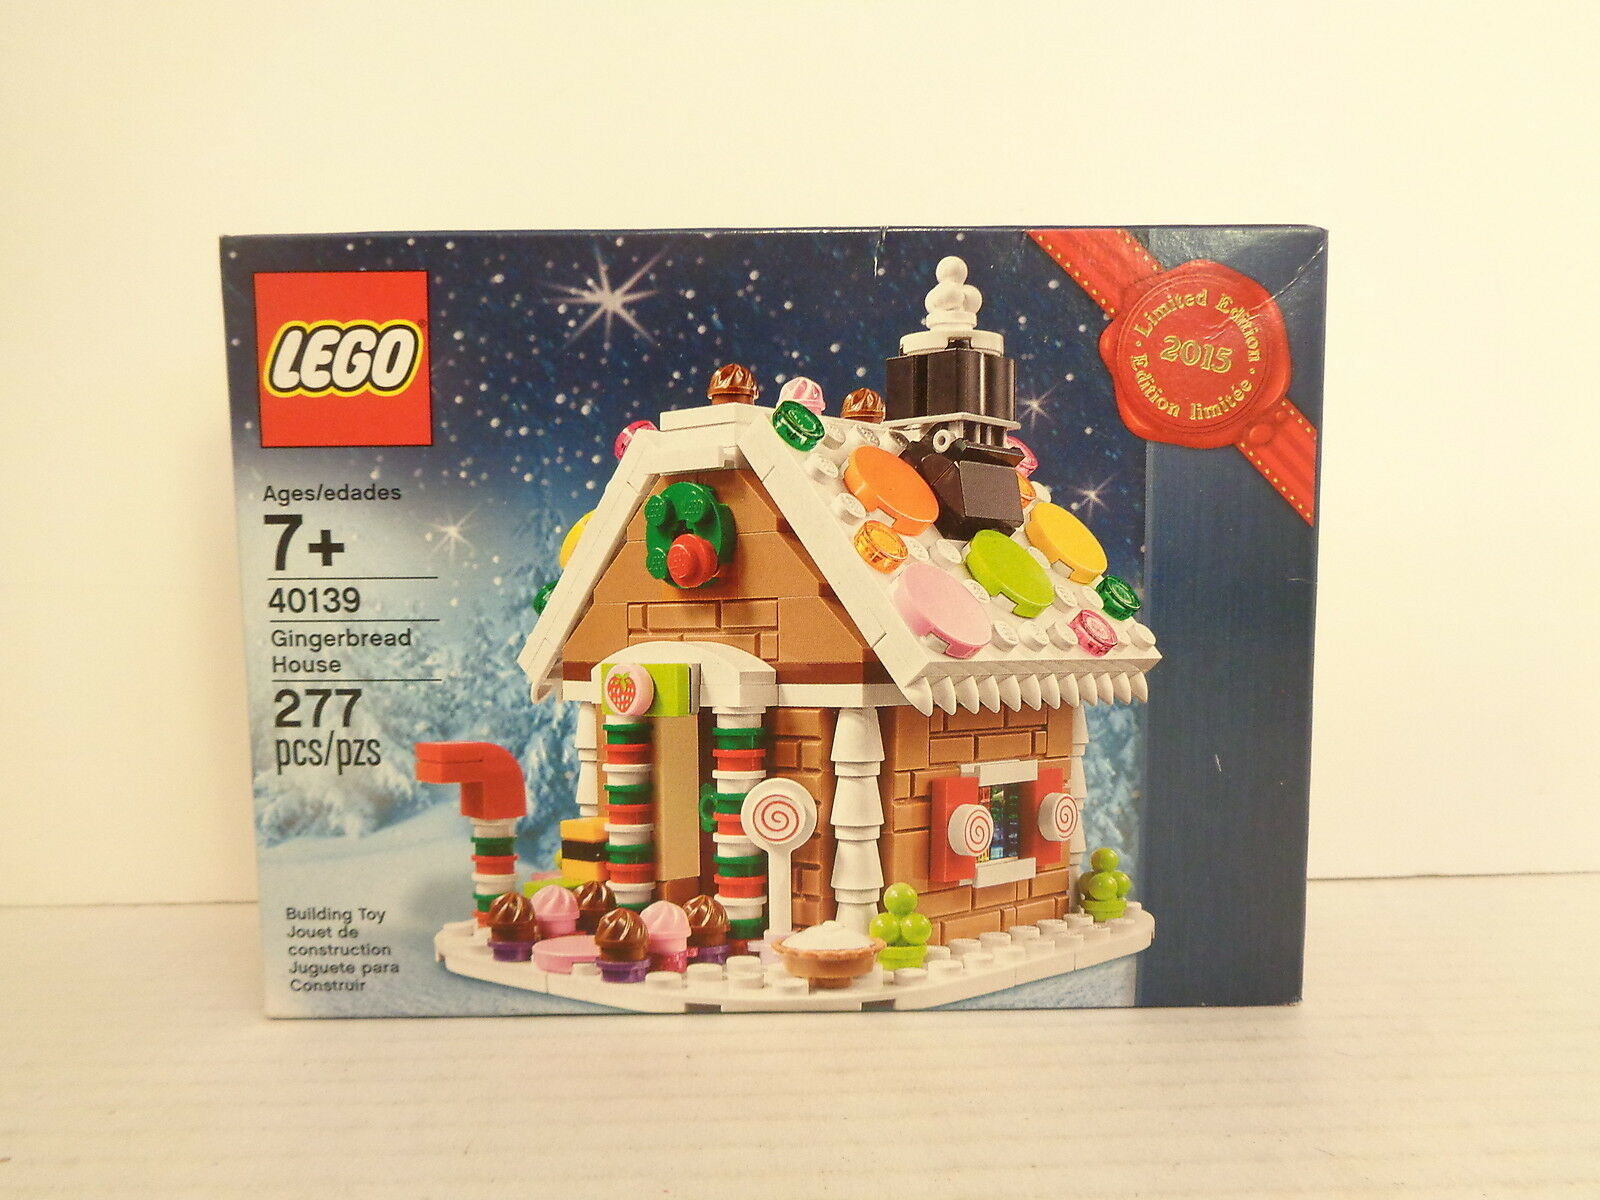 2015 Lego  40139 Gingerbread House Limited Edition Building Set MIP